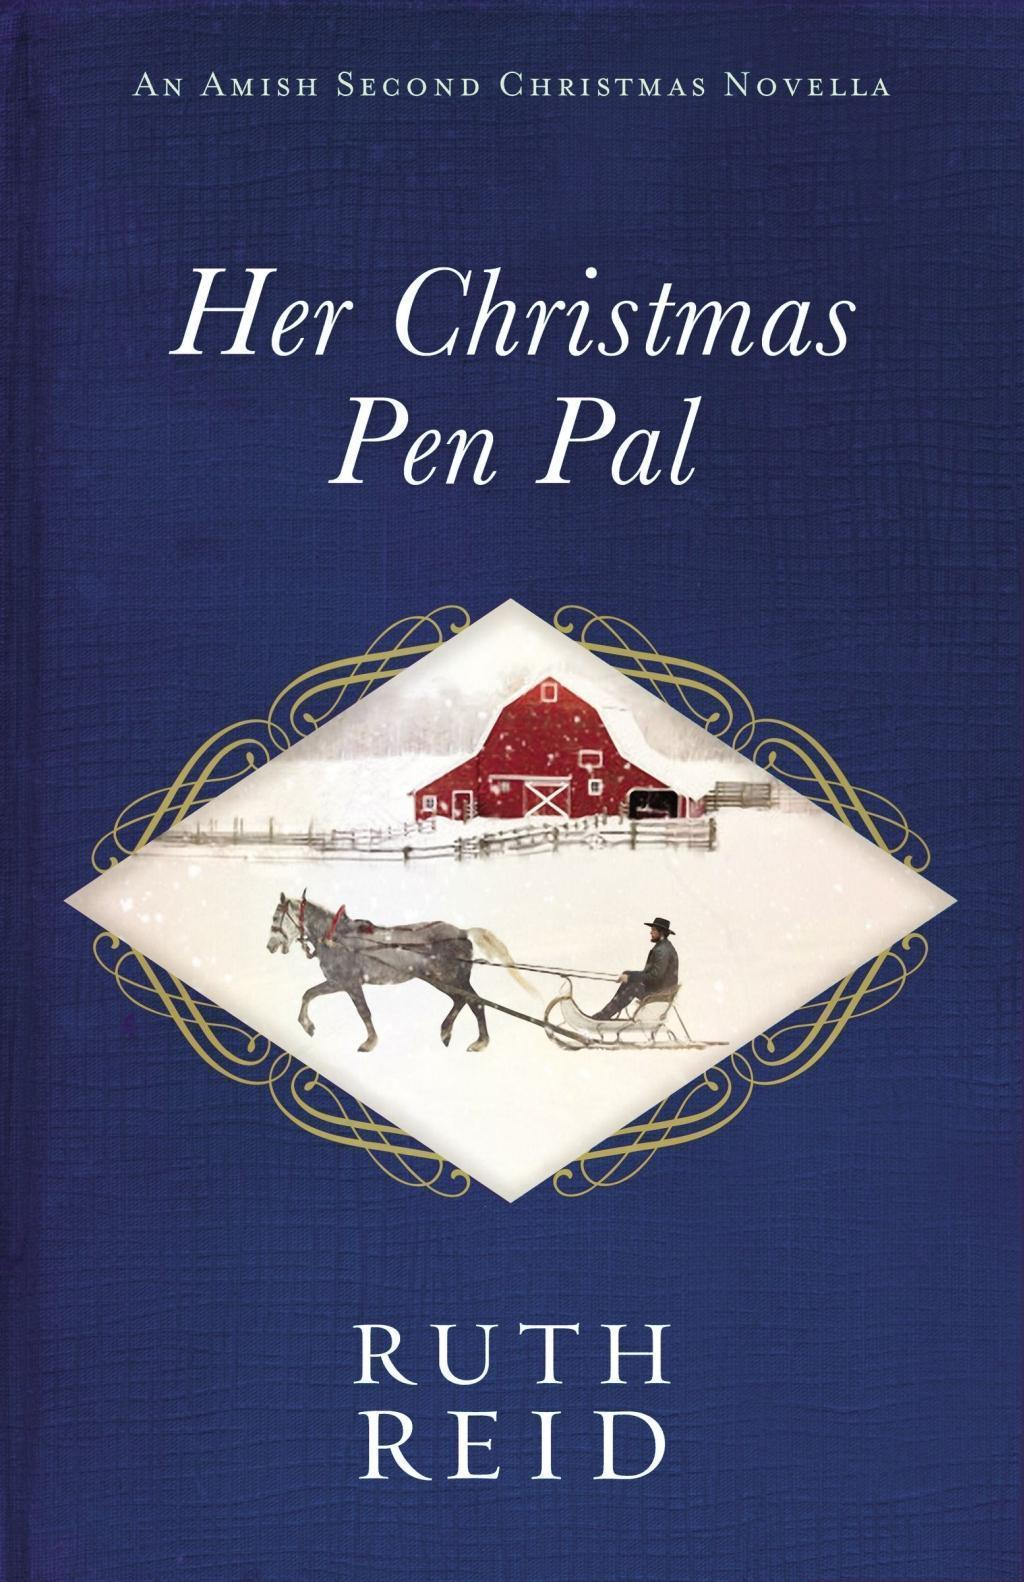 Her Christmas Pen Pal